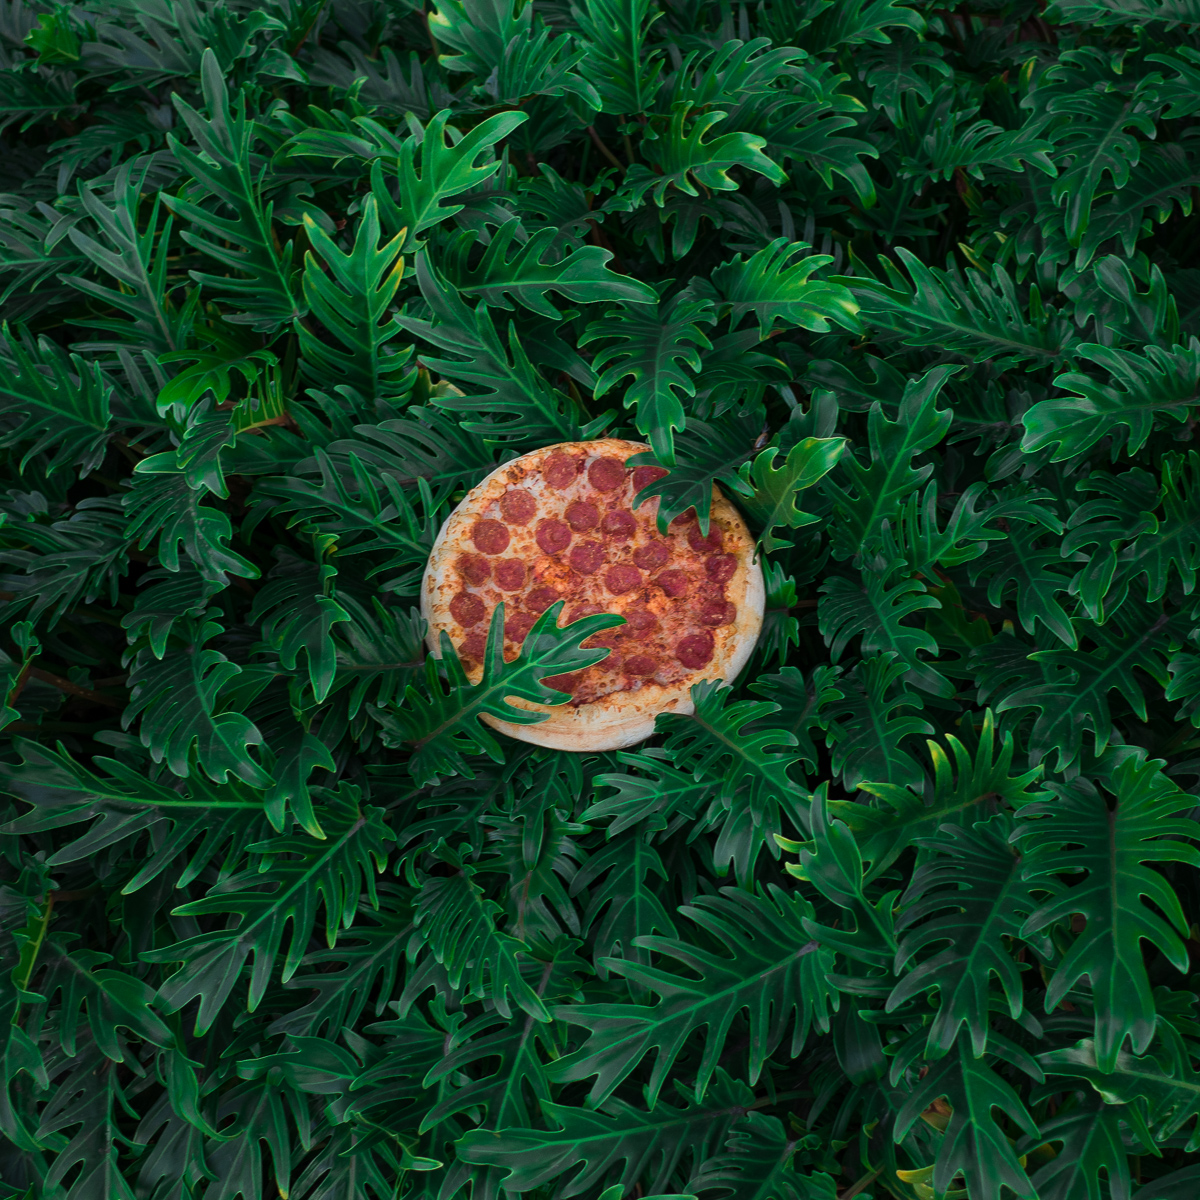 05202017_nota-pizza in the wild 05.jpg